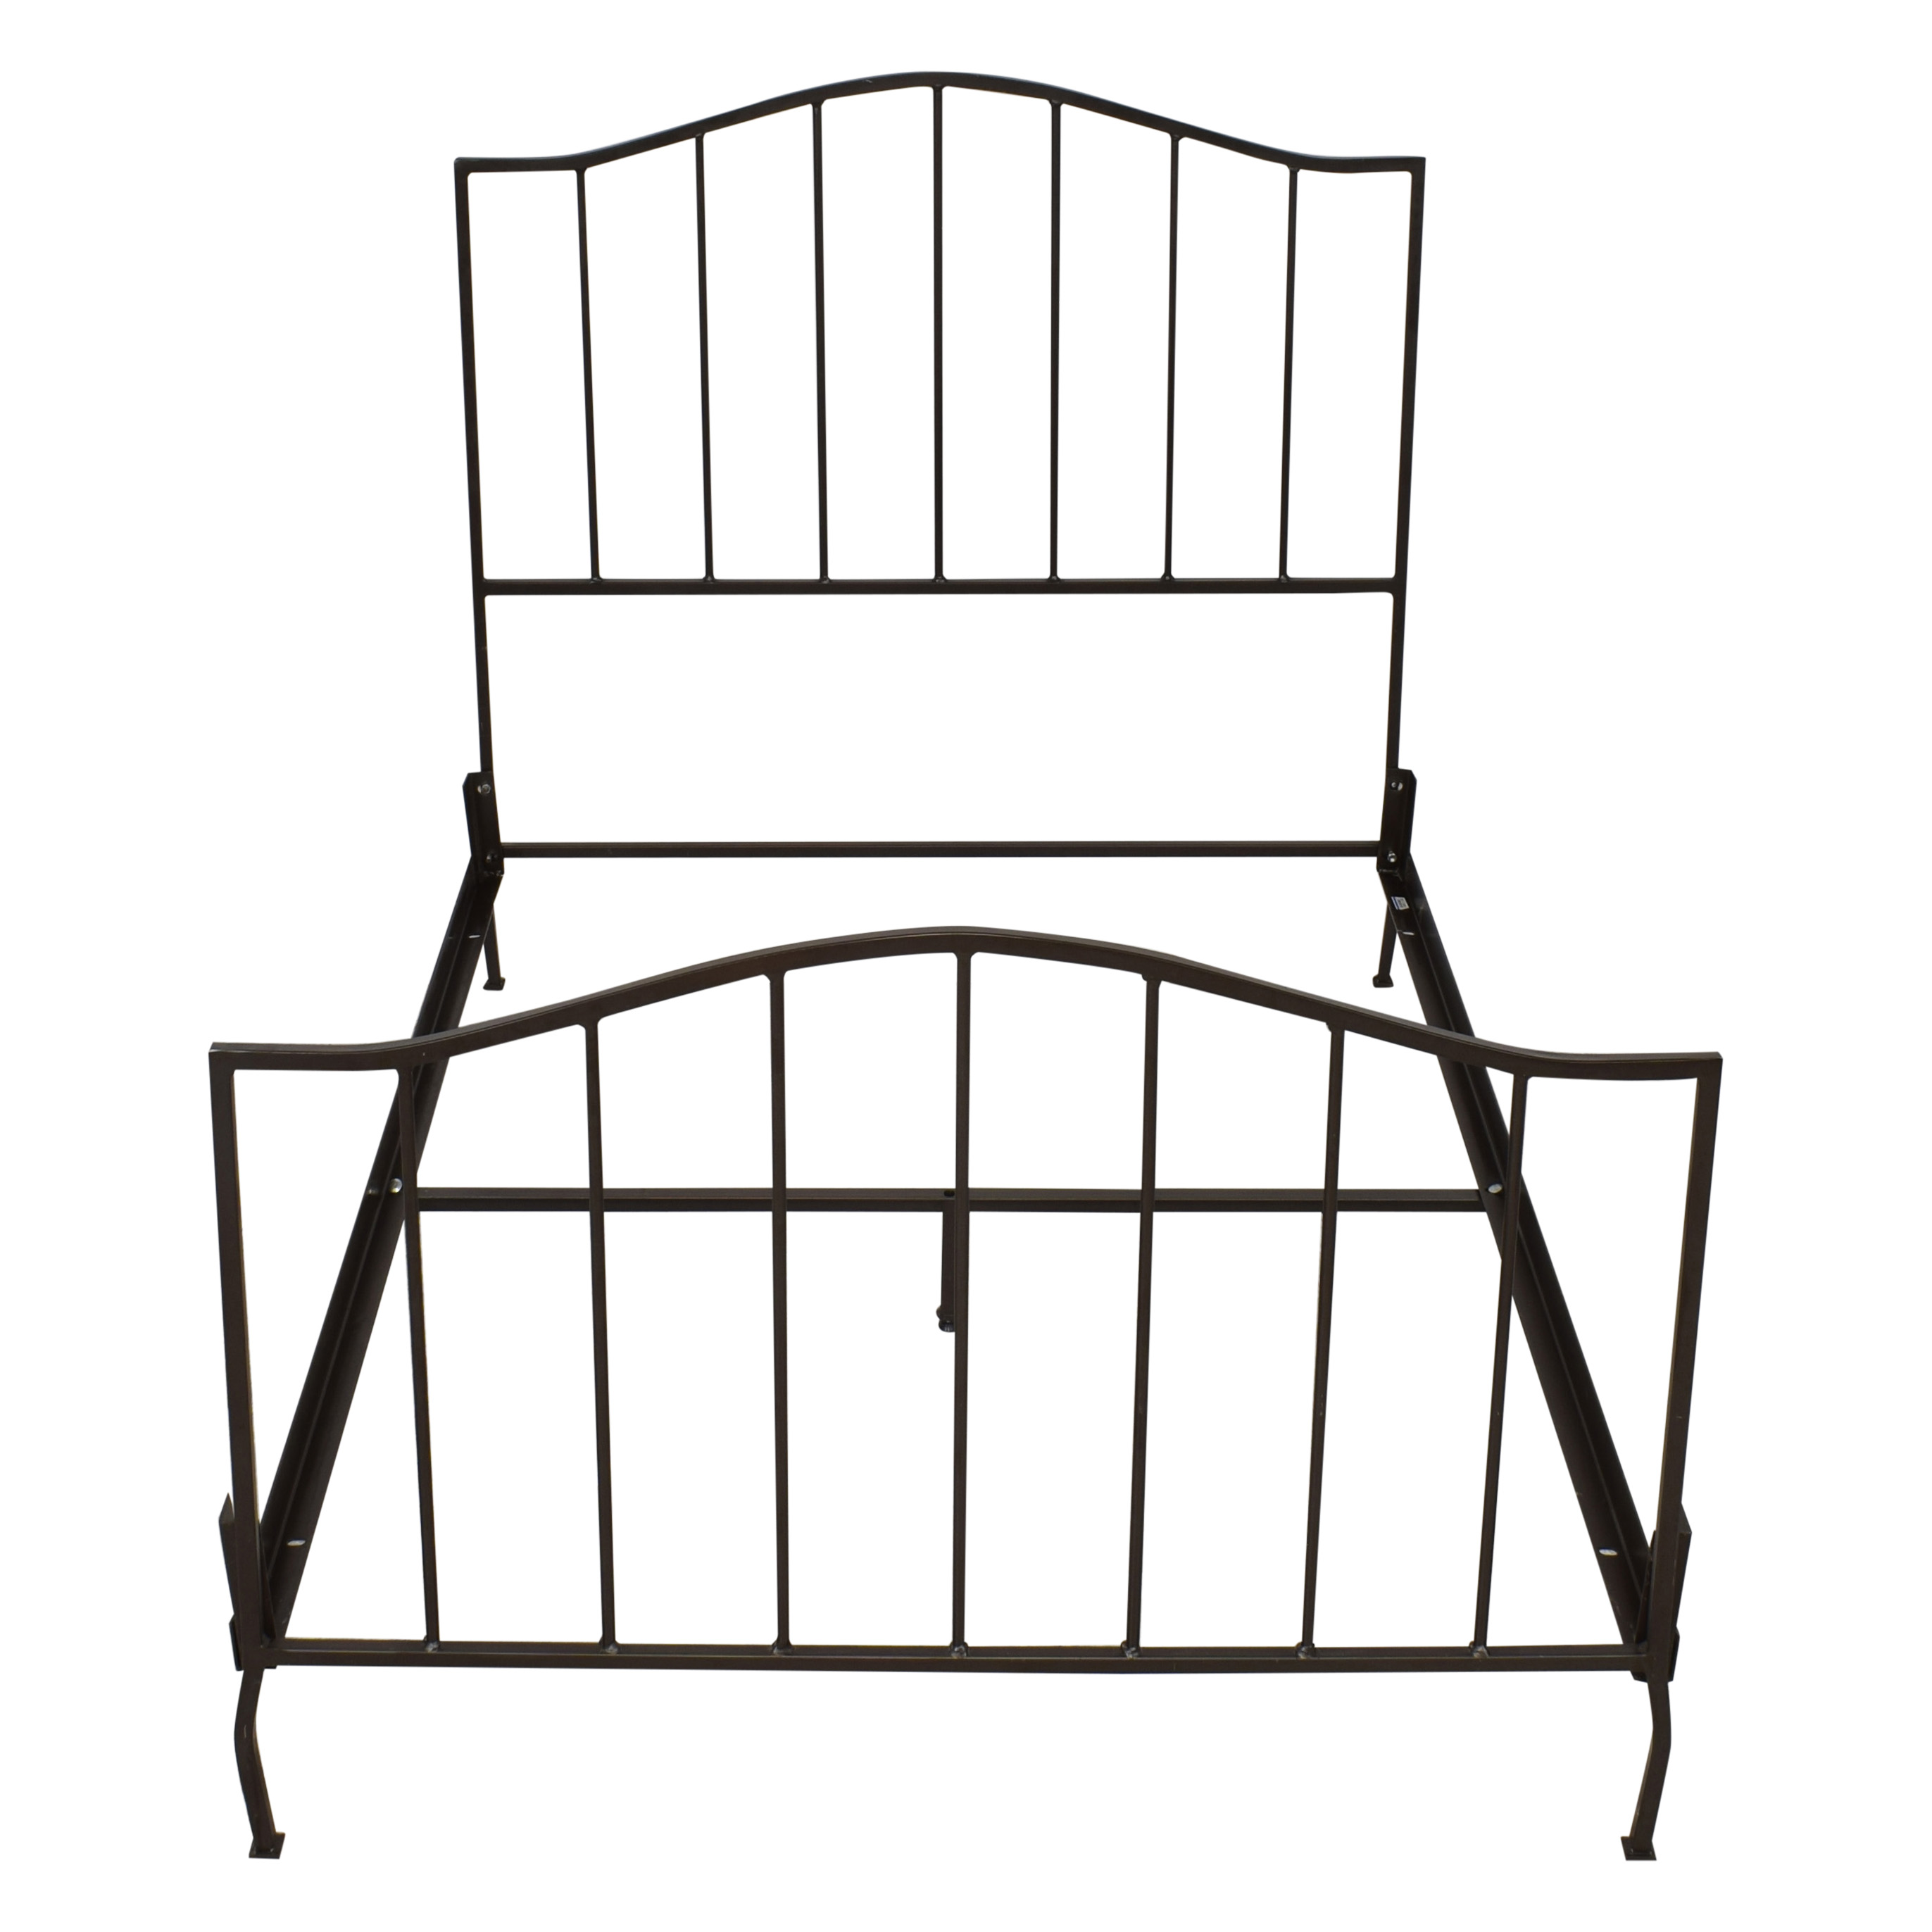 Crate & Barrel Crate &Barrel Full Metal Bed Frame nj